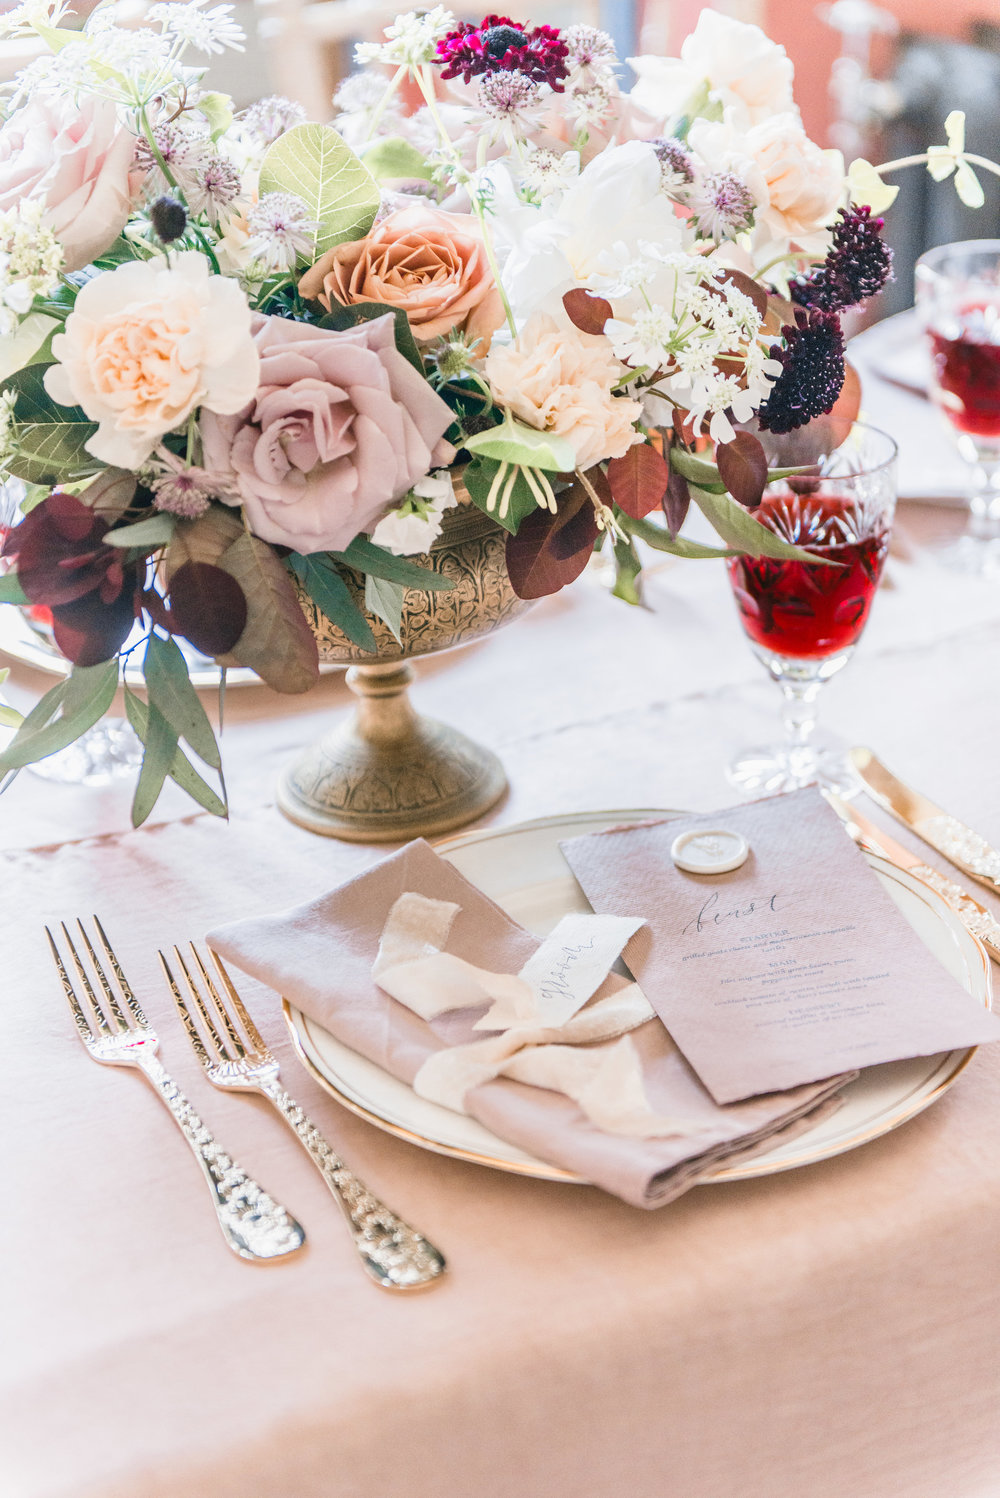 The Timeless Stylist-Elegant and Romantic Dinner Party Styling-Brass Bowl Vase